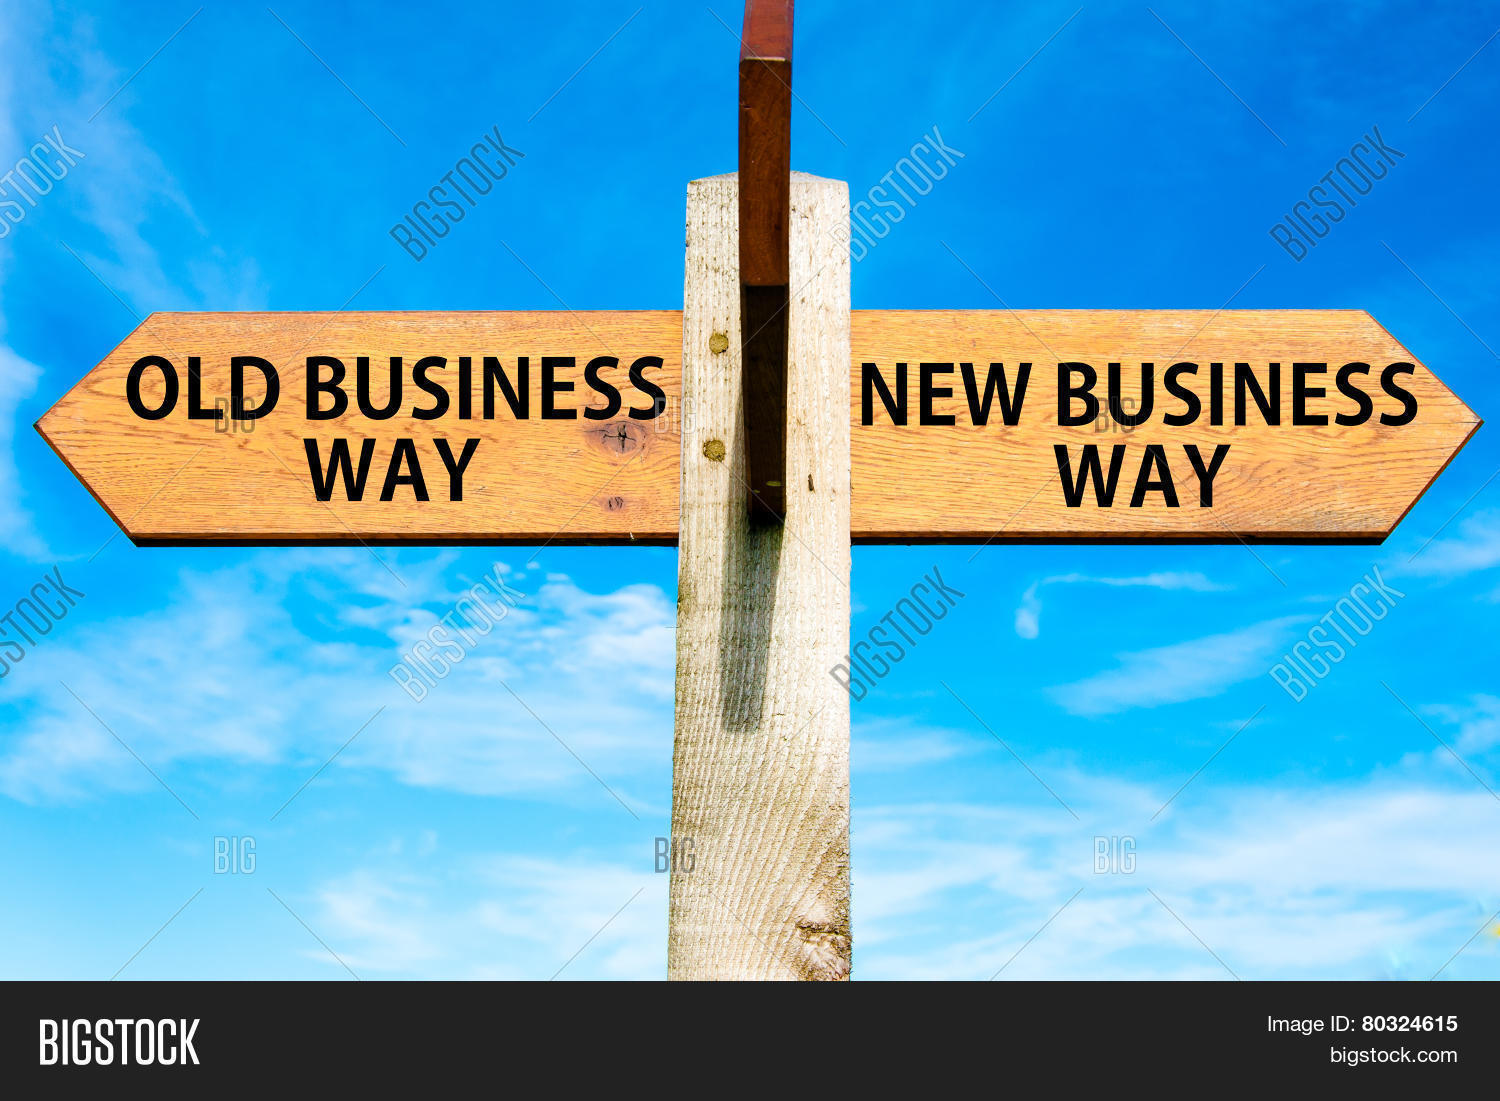 Old Business Way Versus New Image & Photo | Bigstock